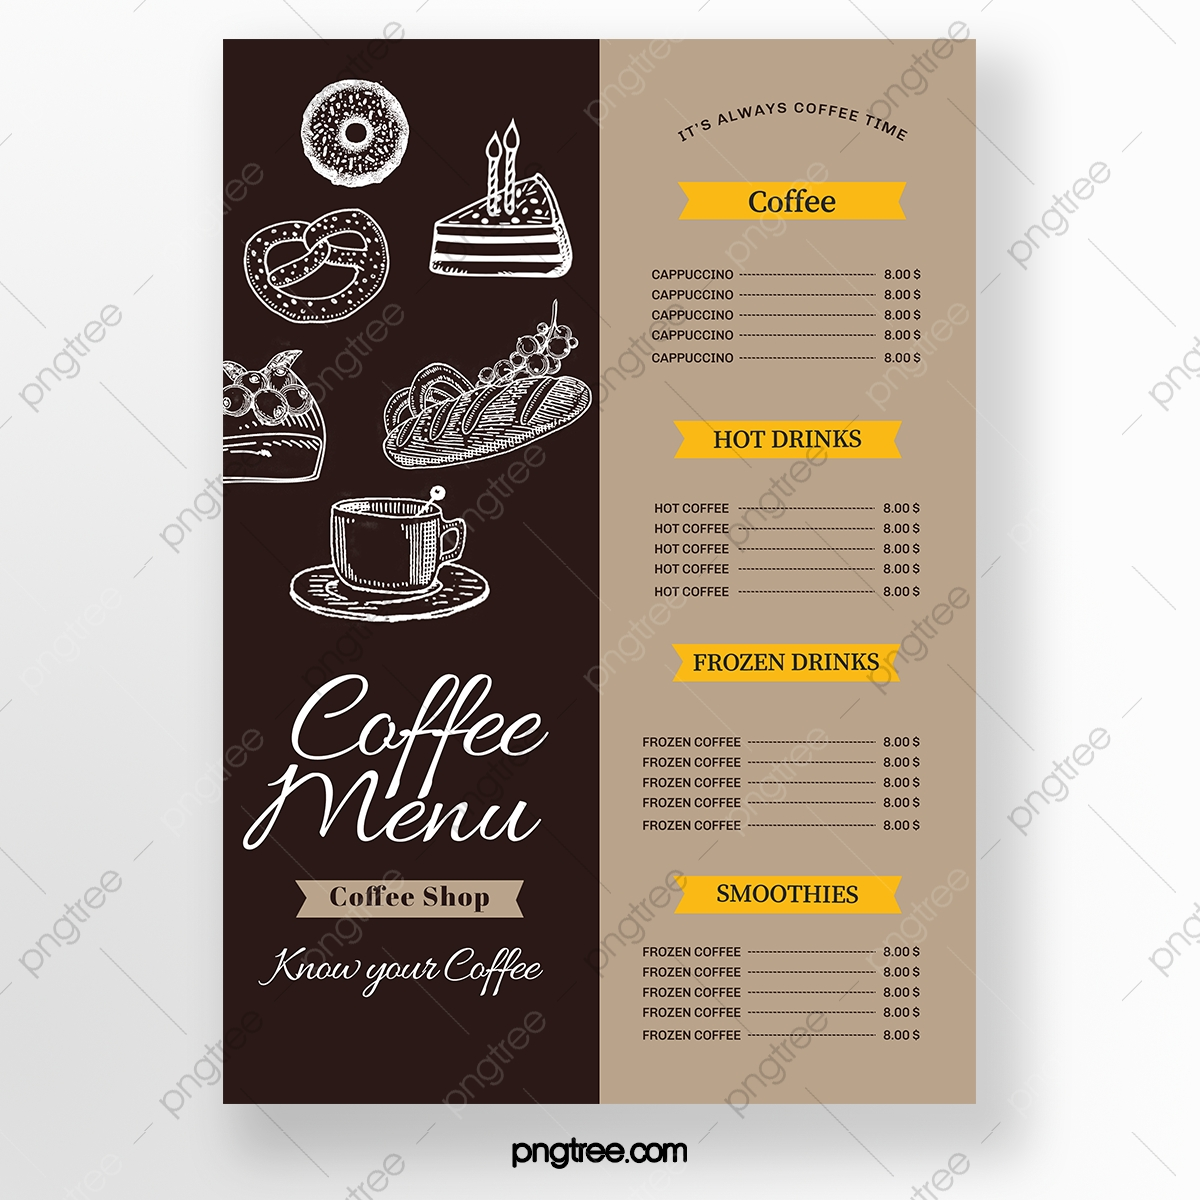 Coffee Menu Png Images Vector And Psd Files Free Download On Pngtree